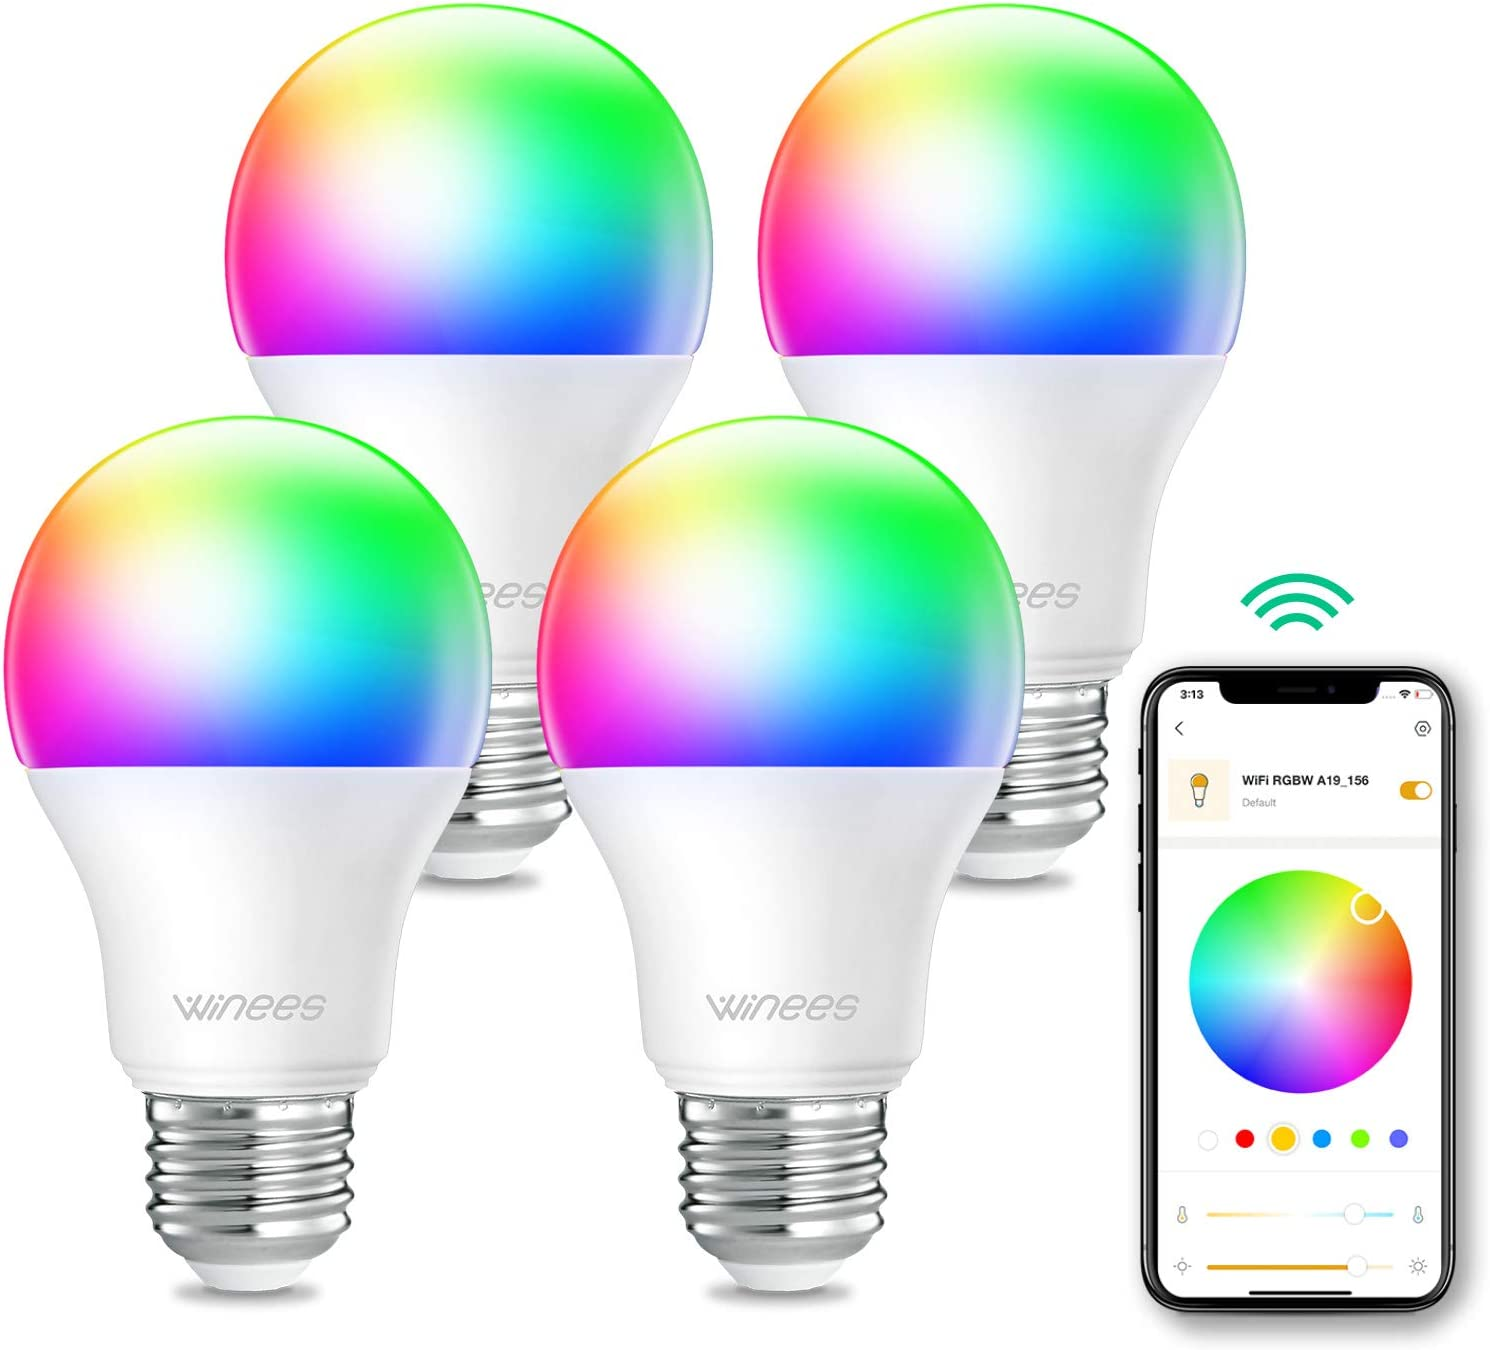 Smart Light Bulbs, WINEES LED Color Changing Light Bulb, 60W Equivalent WiFi Smart Bulbs dimmable Compatible with Alexa & Google Assistant for Smart Home Lighting, A19 E26 4-Pack